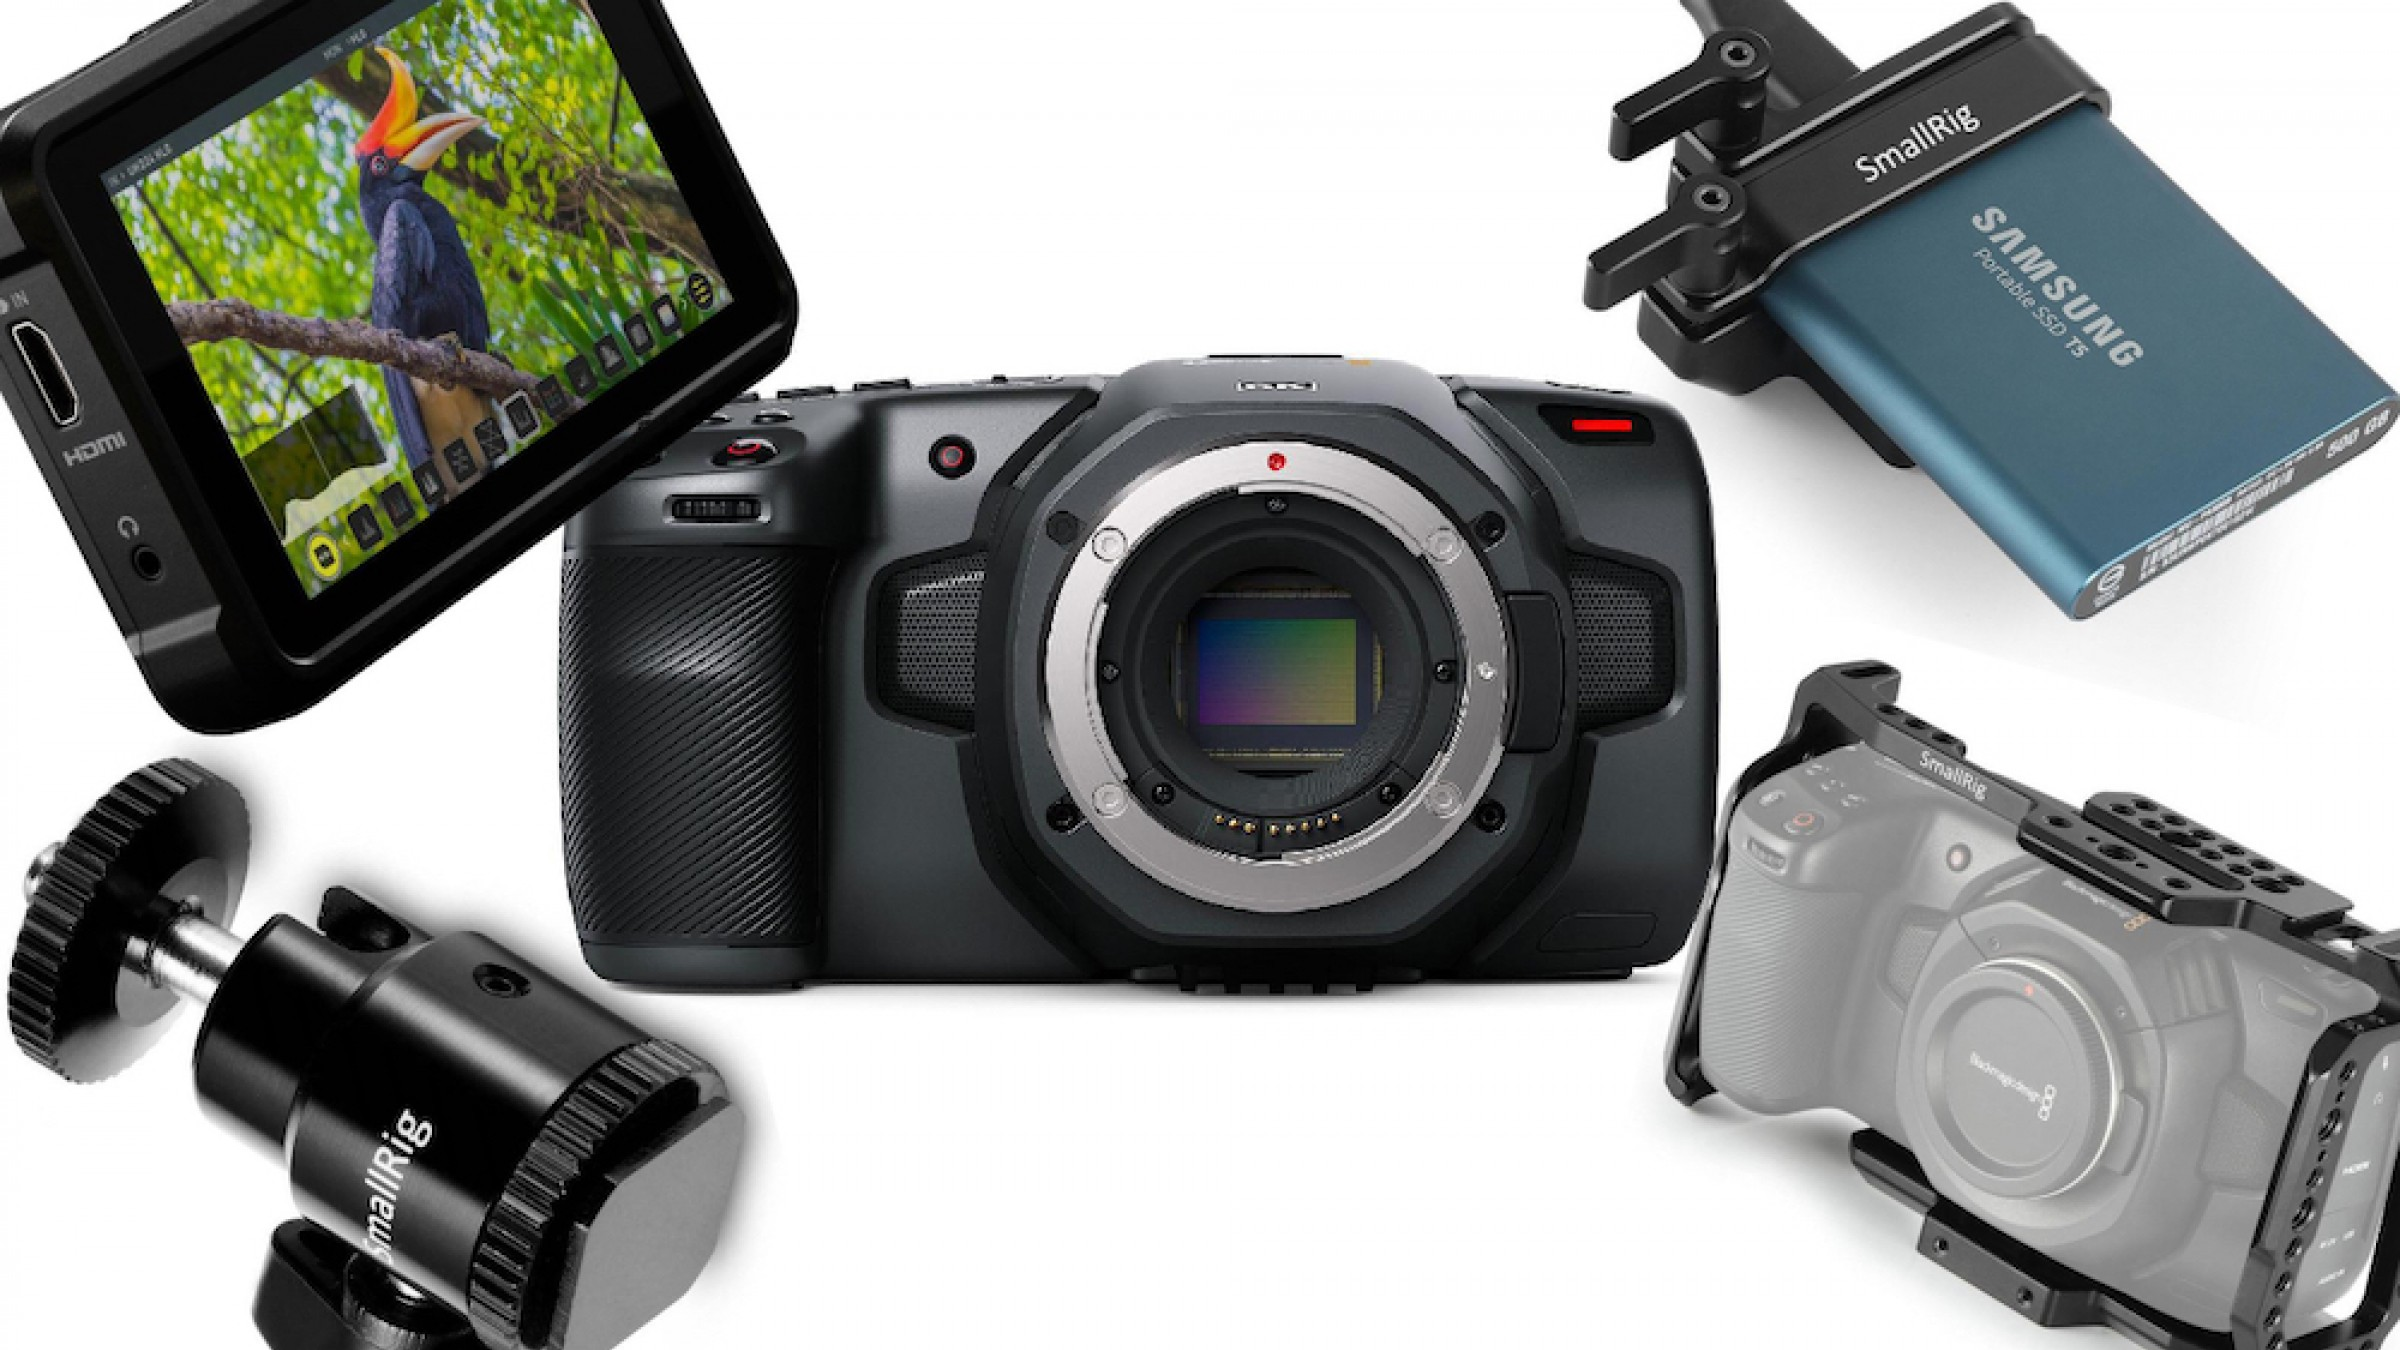 These Bmpcc6k Kits Basically Give You A Ton Of Extras For Free